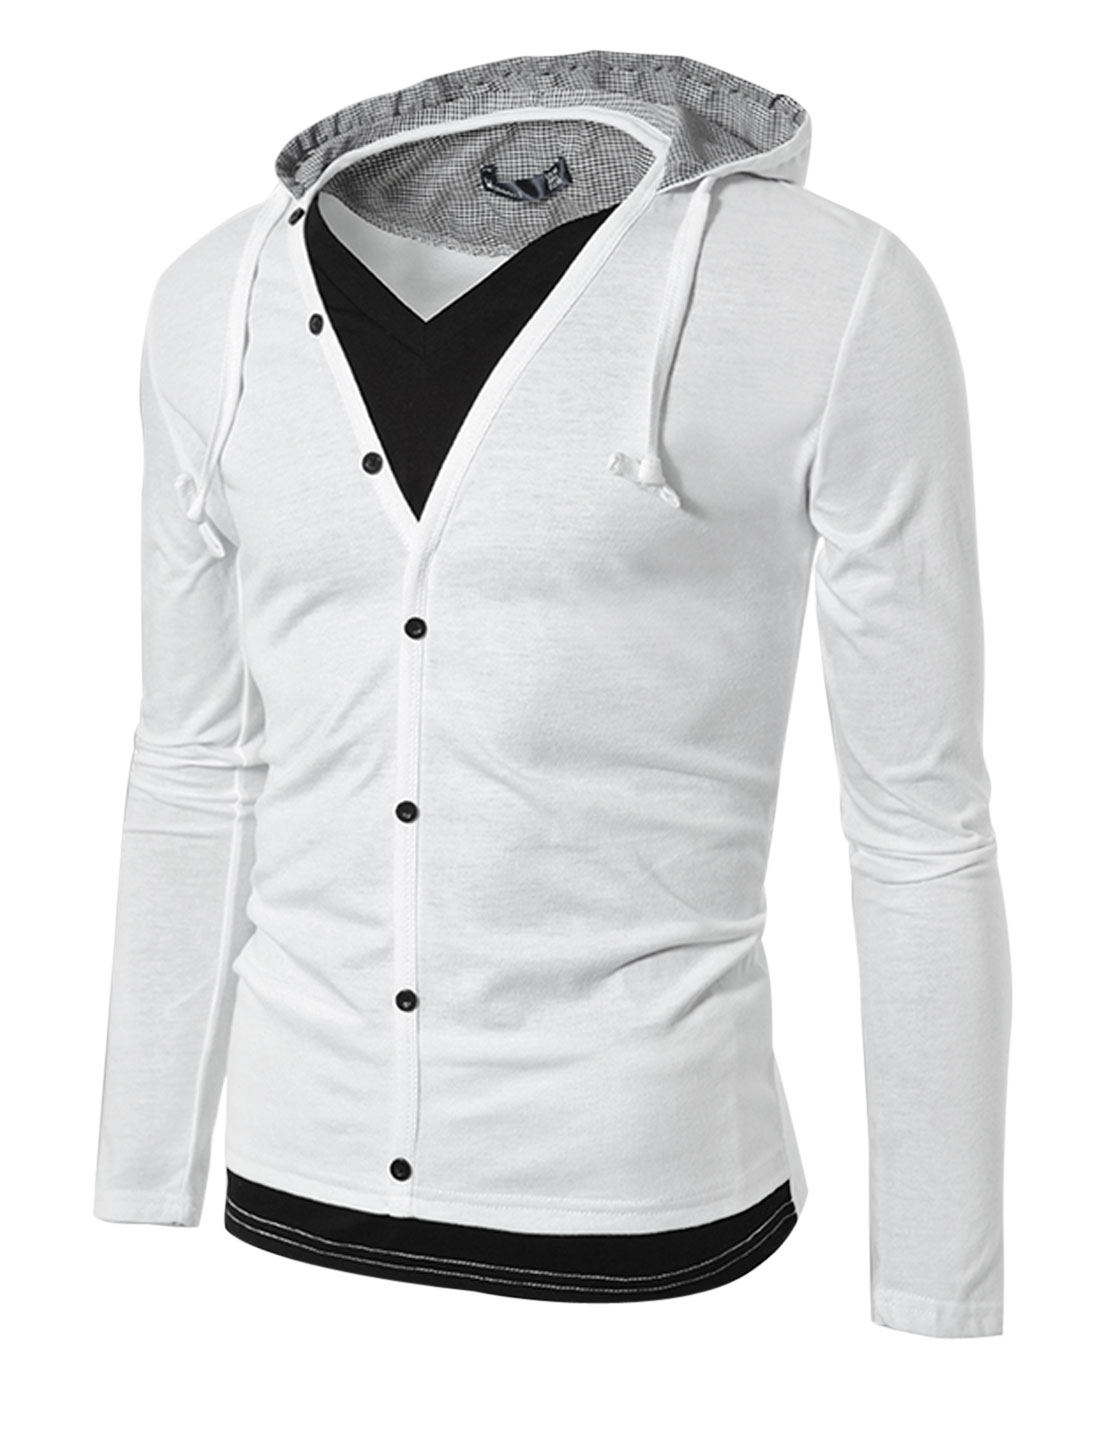 Men Layered Designs V Neck Fashion Design Hoodie Causal Jacket White S